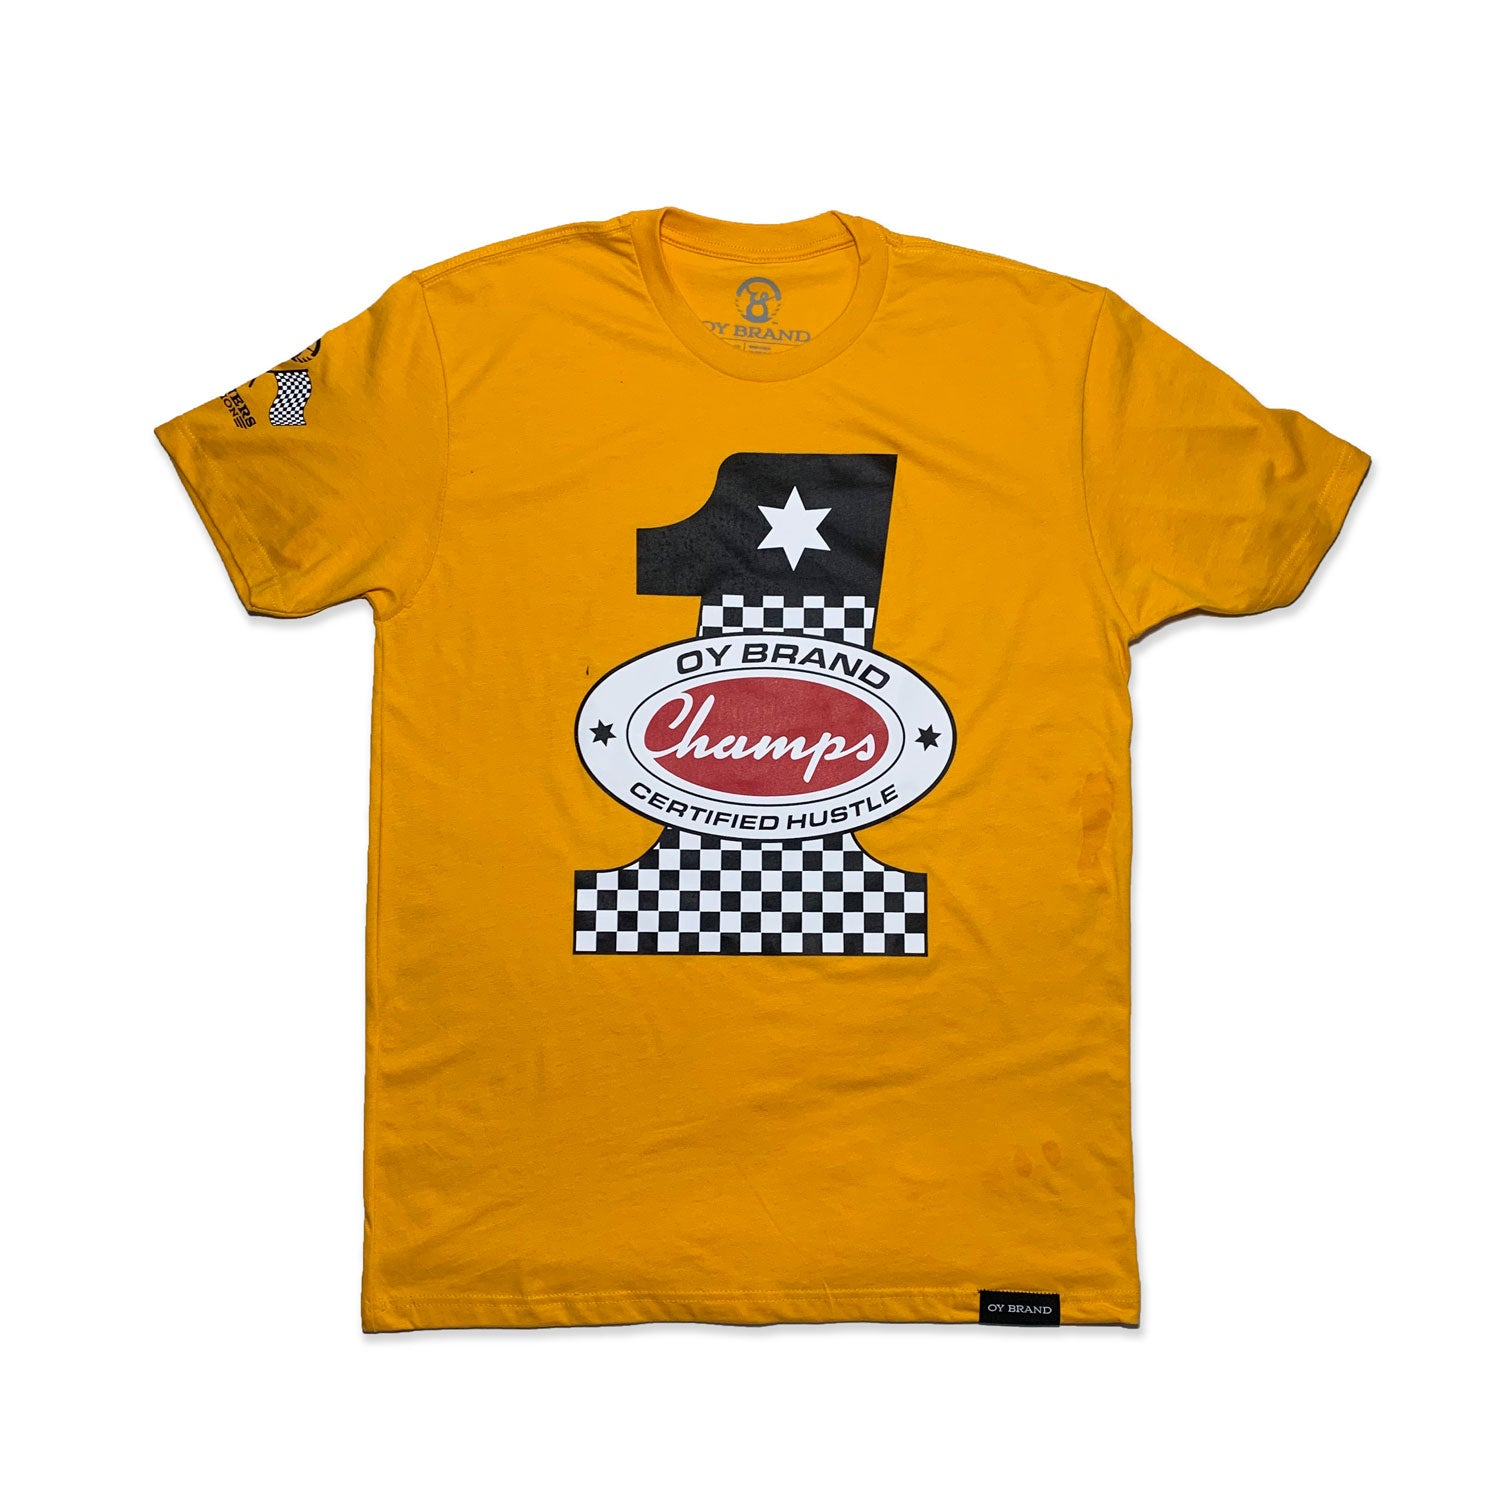 gold oy brand t shirt with number one racing design